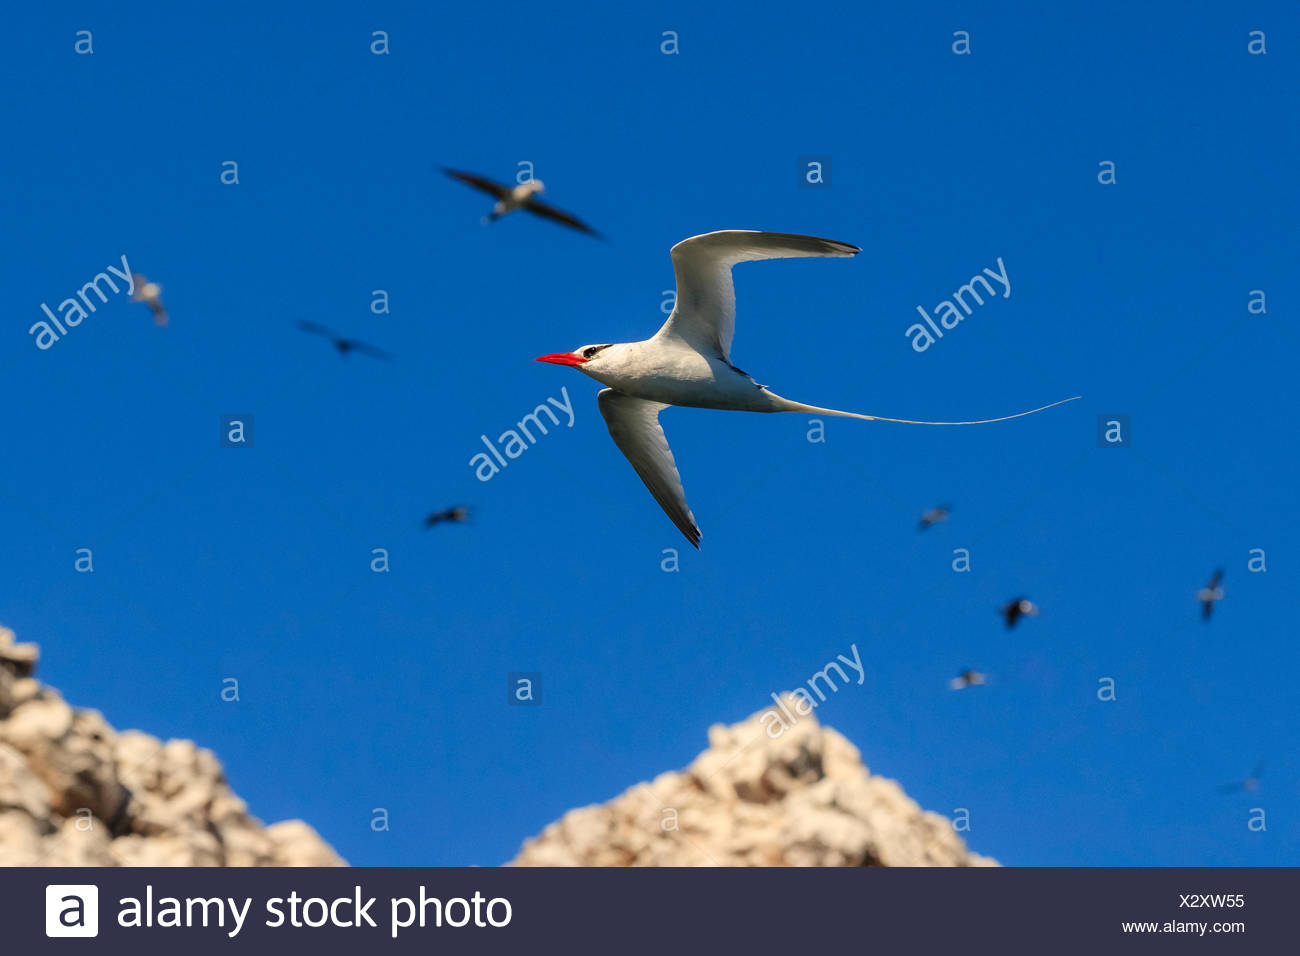 Red-billed tropic bird, Phaethon aethereus, in flight at San Pedro Martir Island. - Stock Image